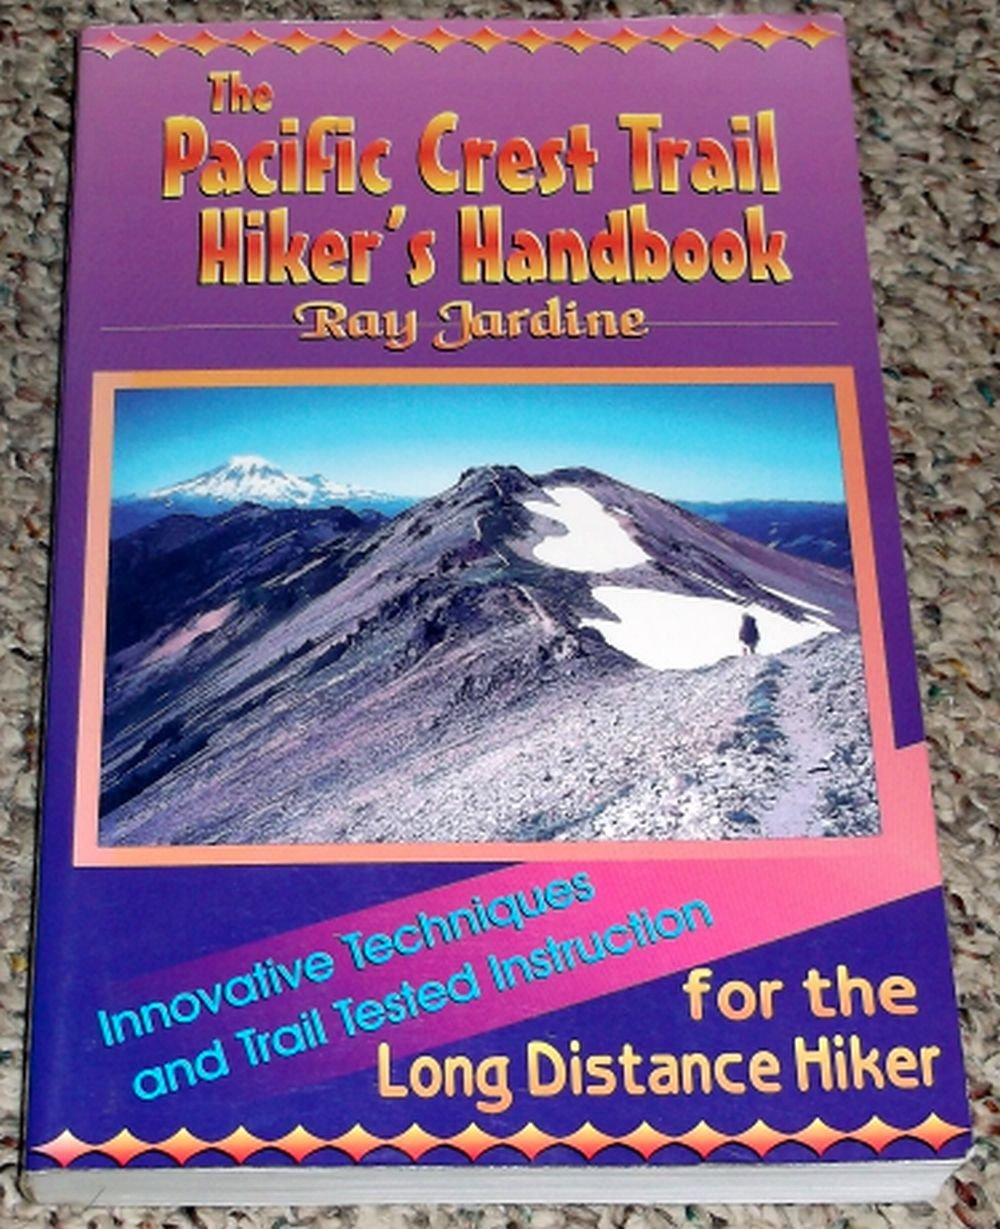 Pacific Crest Trail Hiker's Handbook: Innovative Techniques and Trail Tested Instruction for the Long Distance Hiker